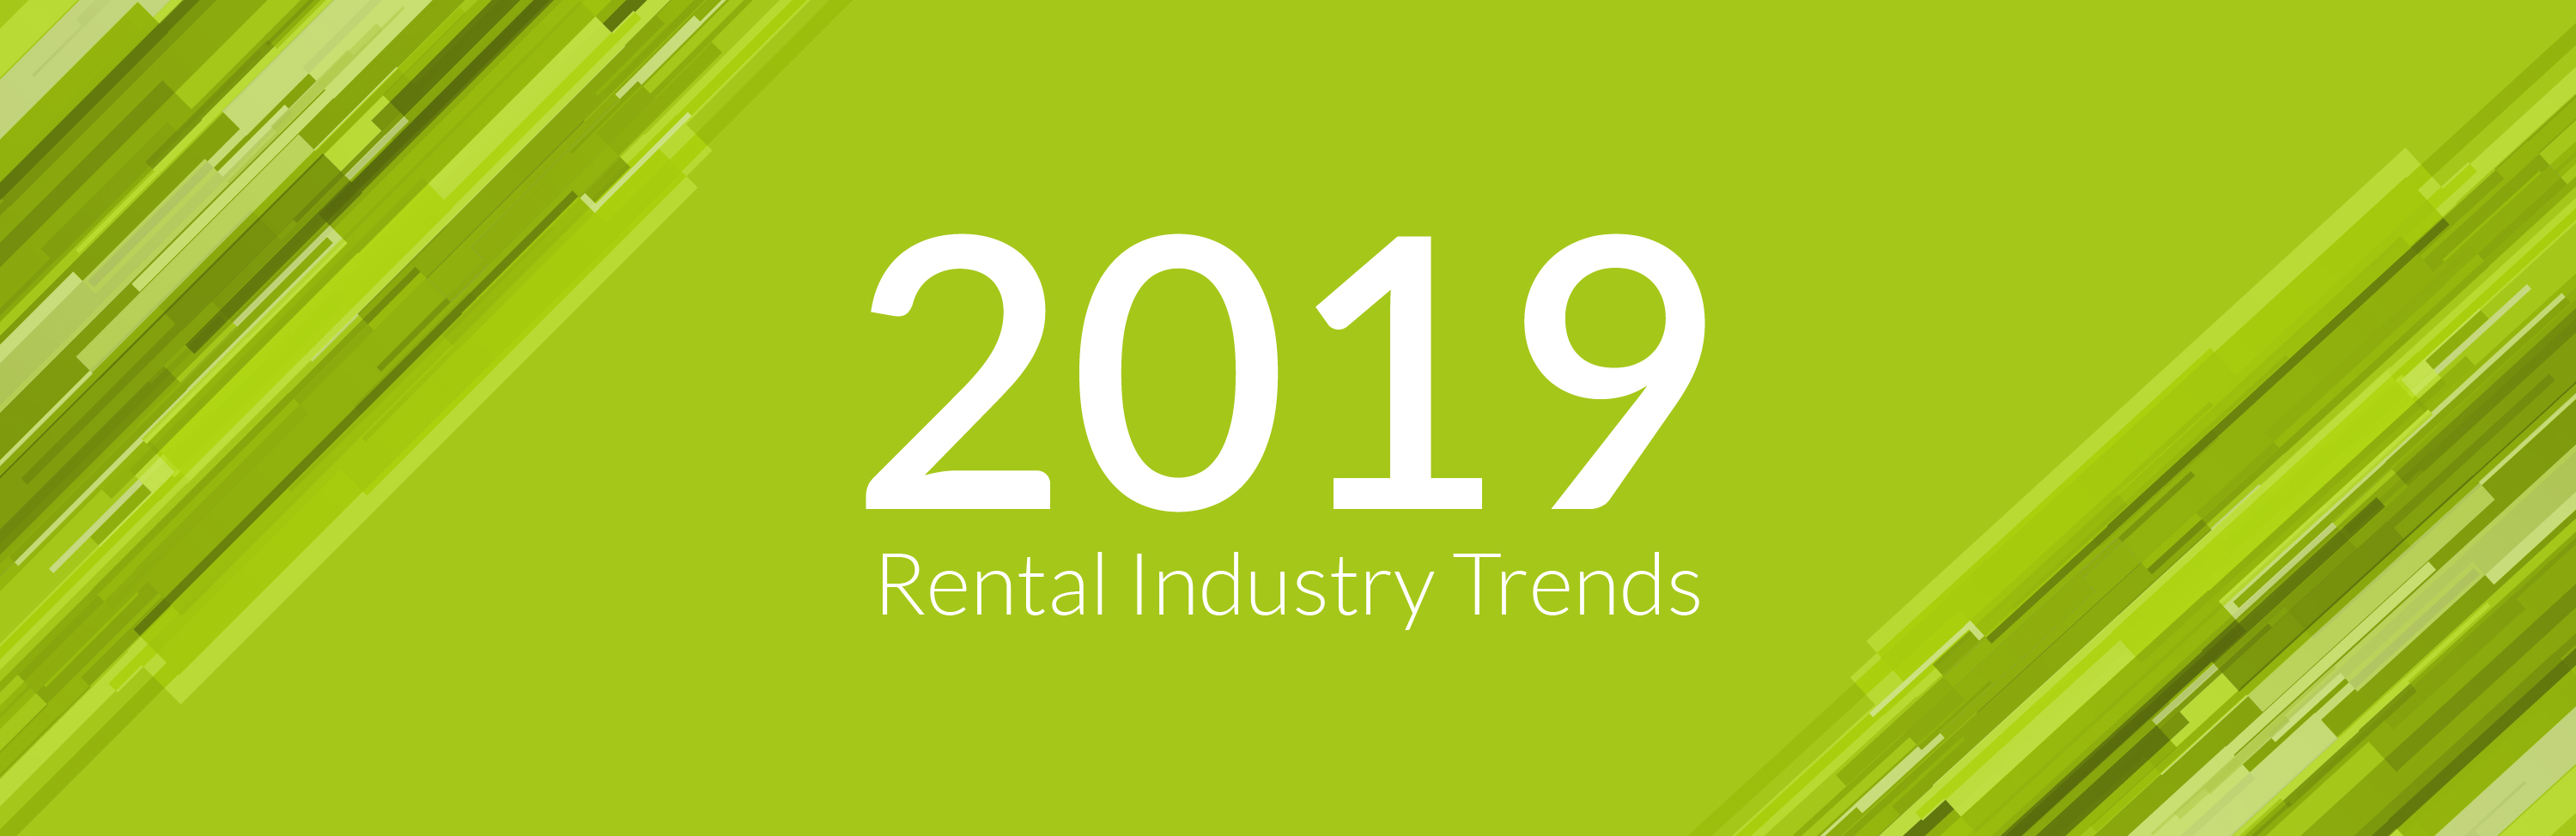 4 Industry Trends To Look Out For in 2019 | Current RMS